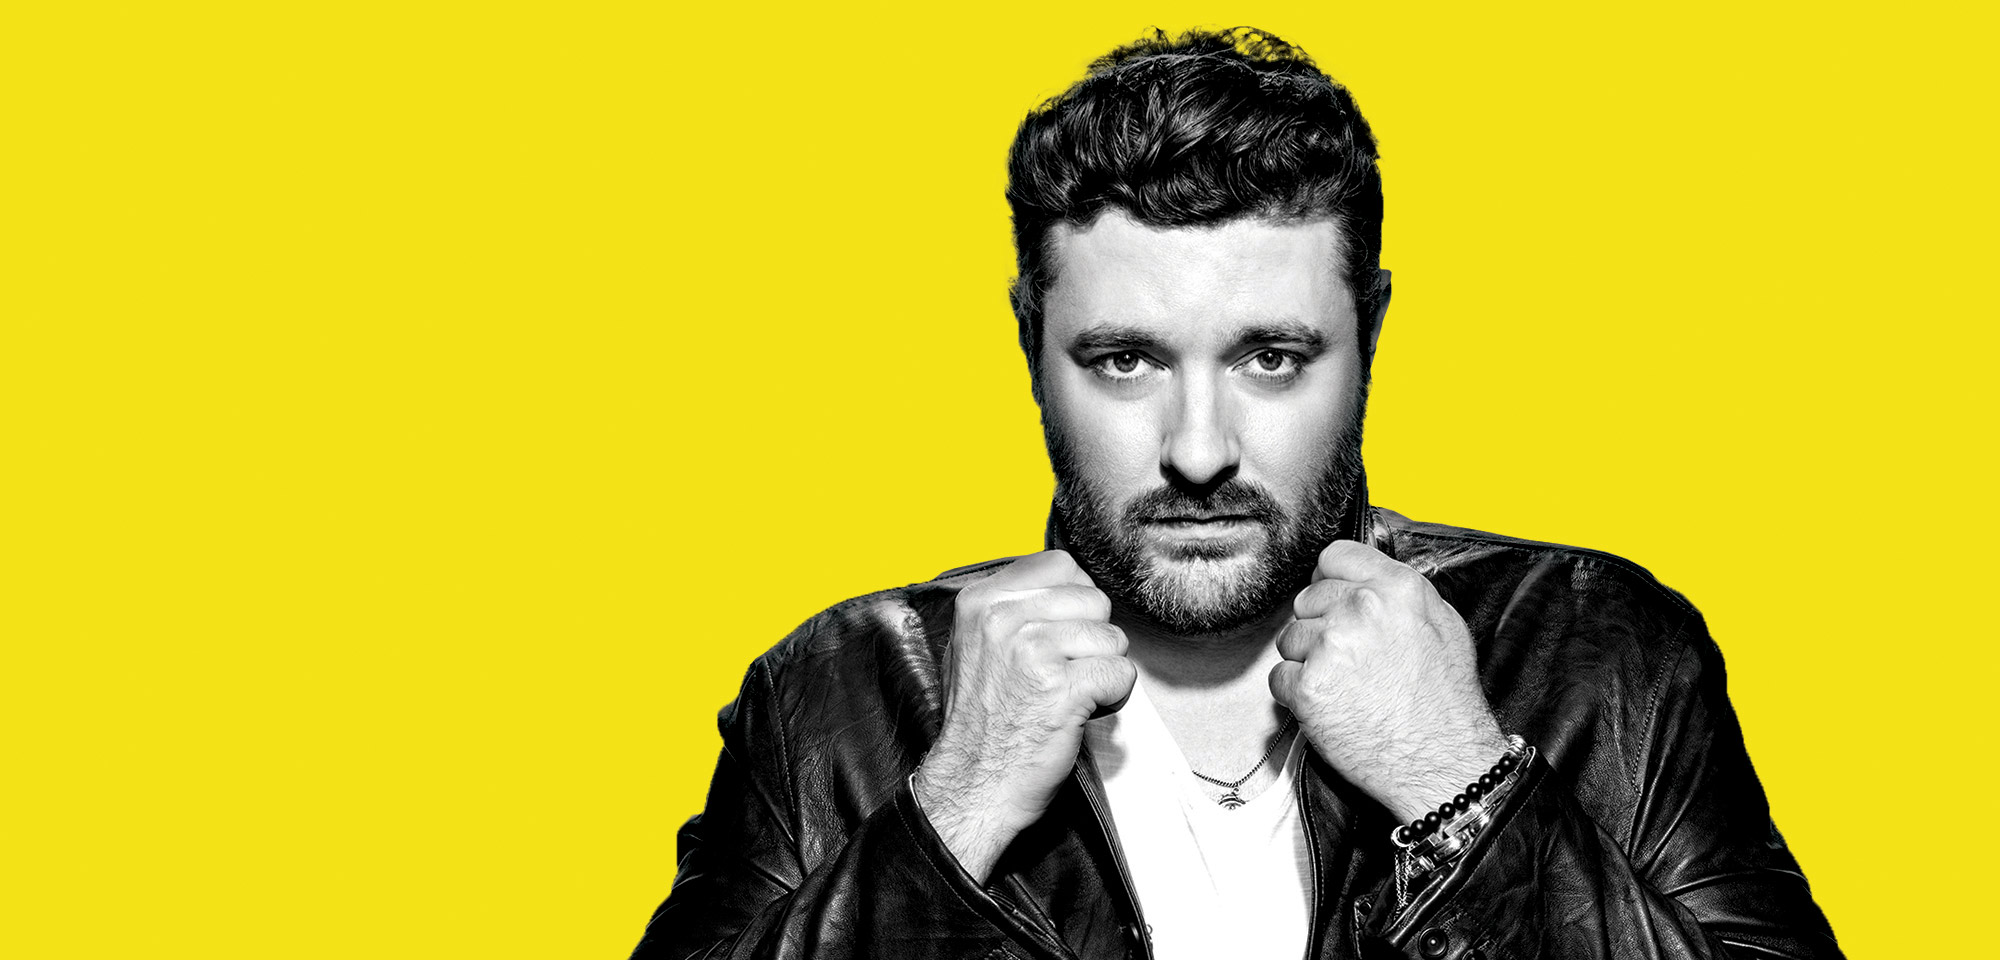 Chris Young - The Brandon Amphitheater